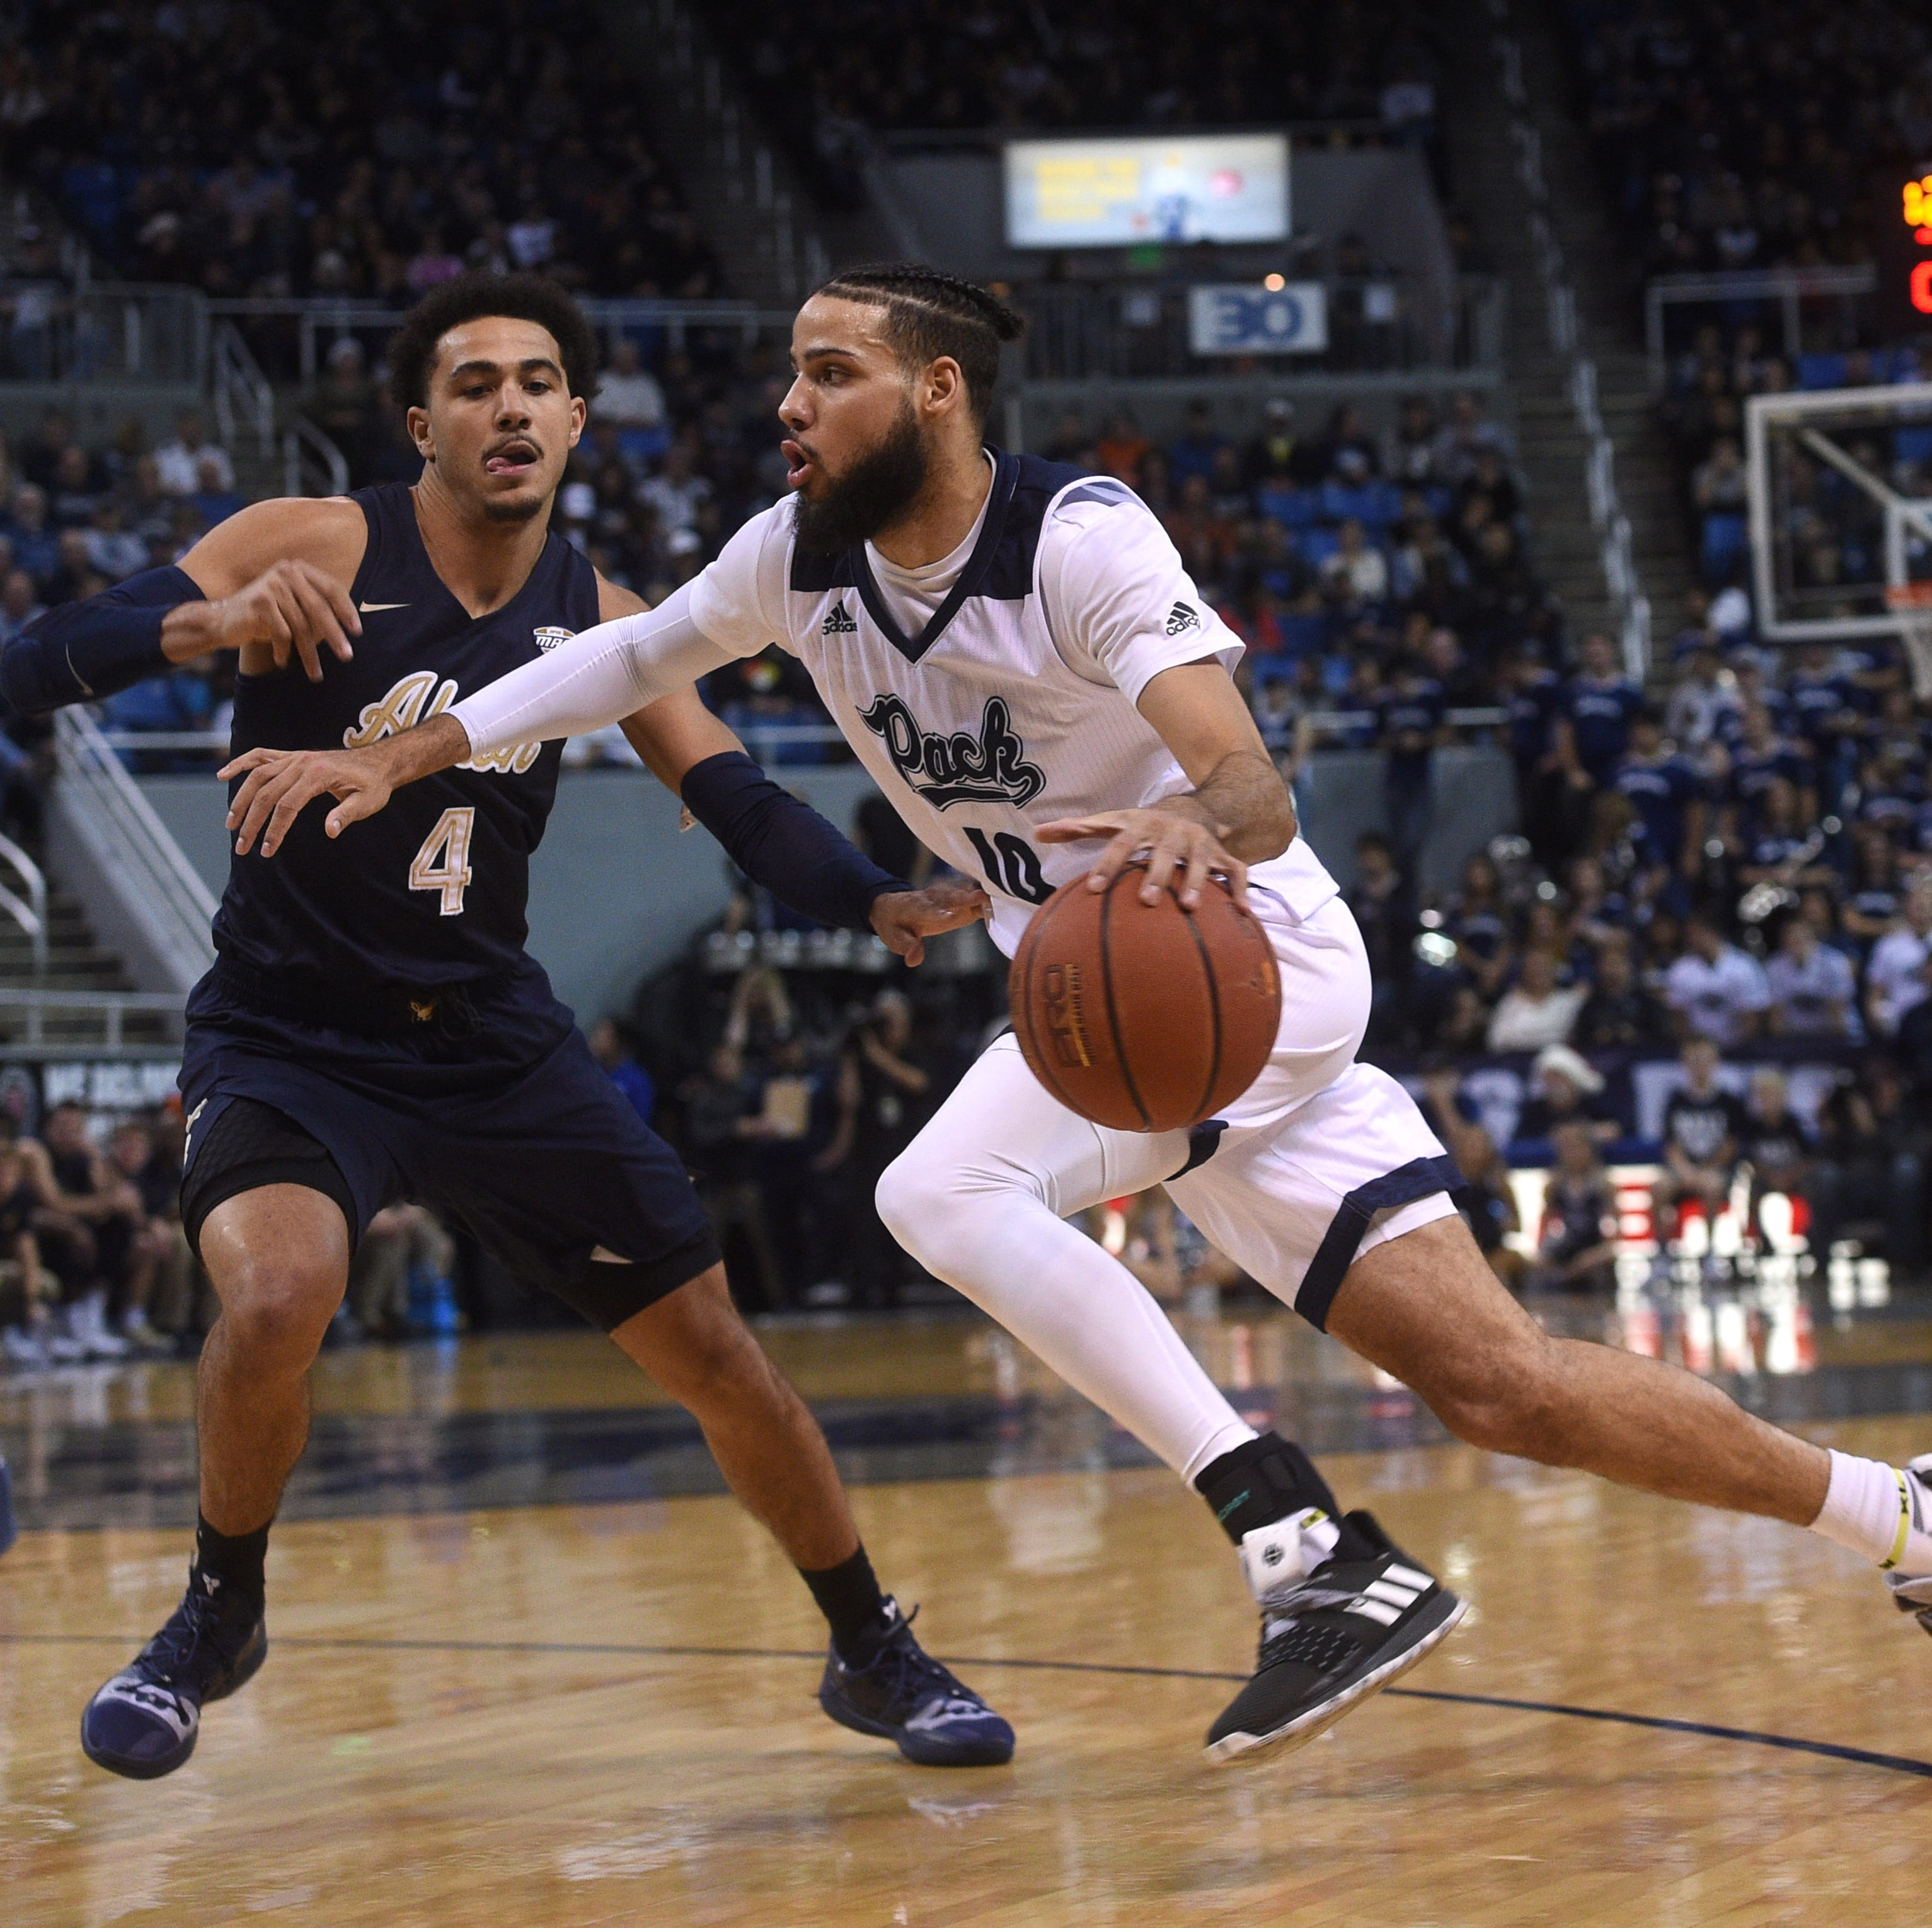 Nevada basketball's national awards train keeps rolling